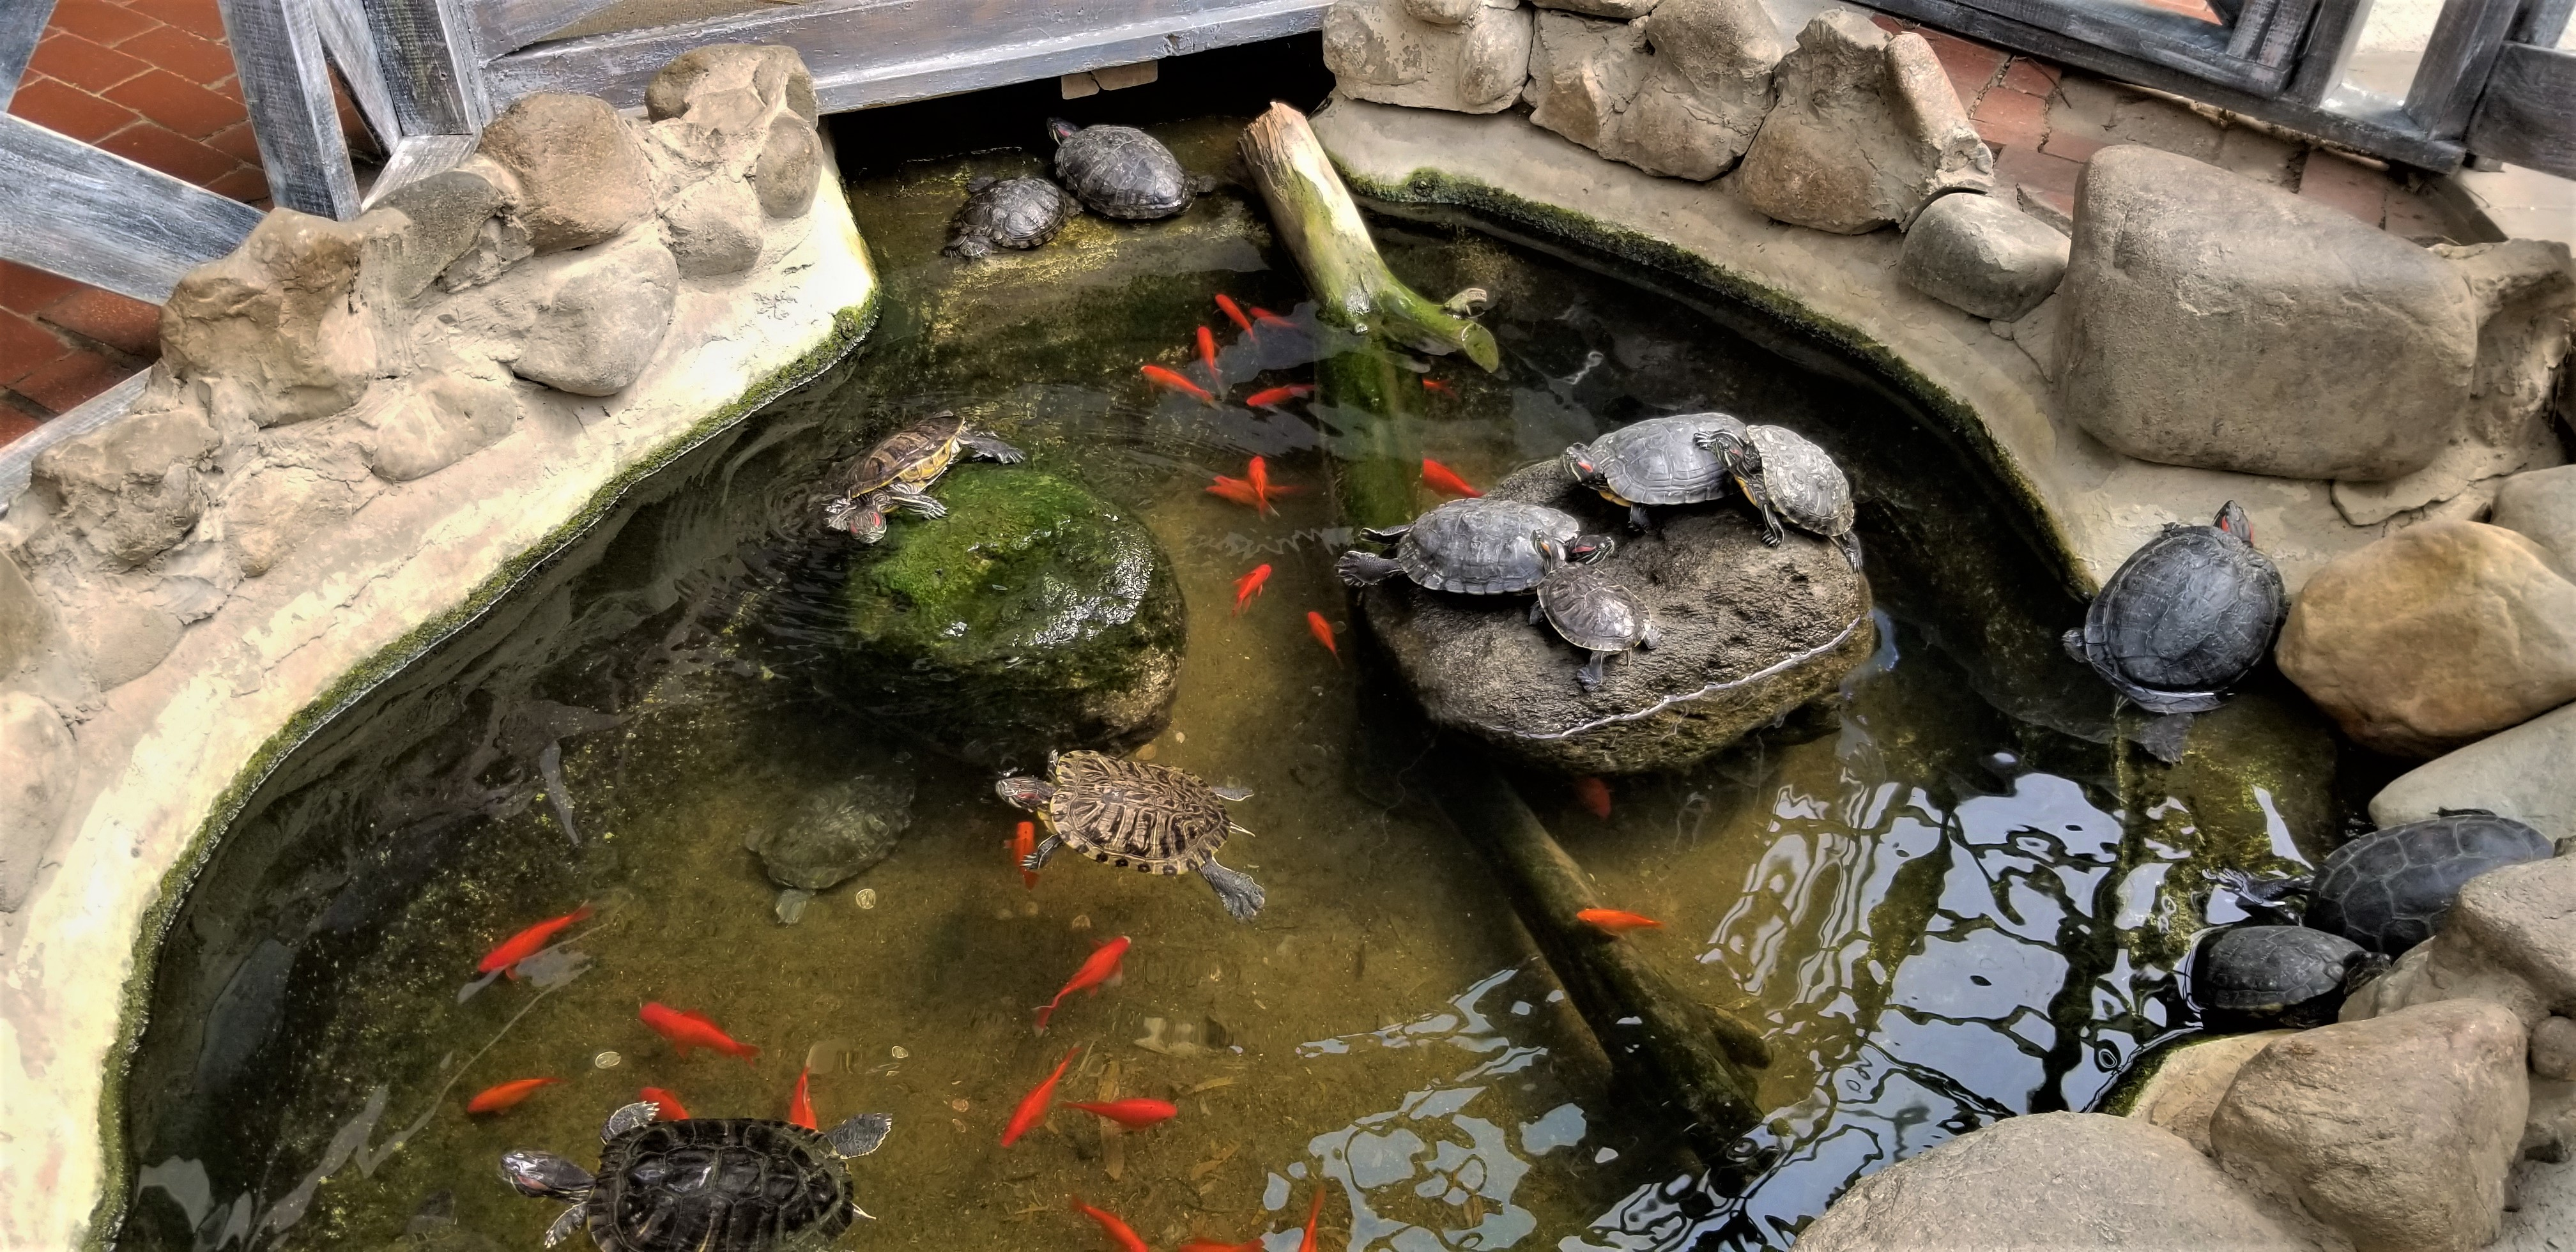 Pond with gold fish and turtles at Colasanti's